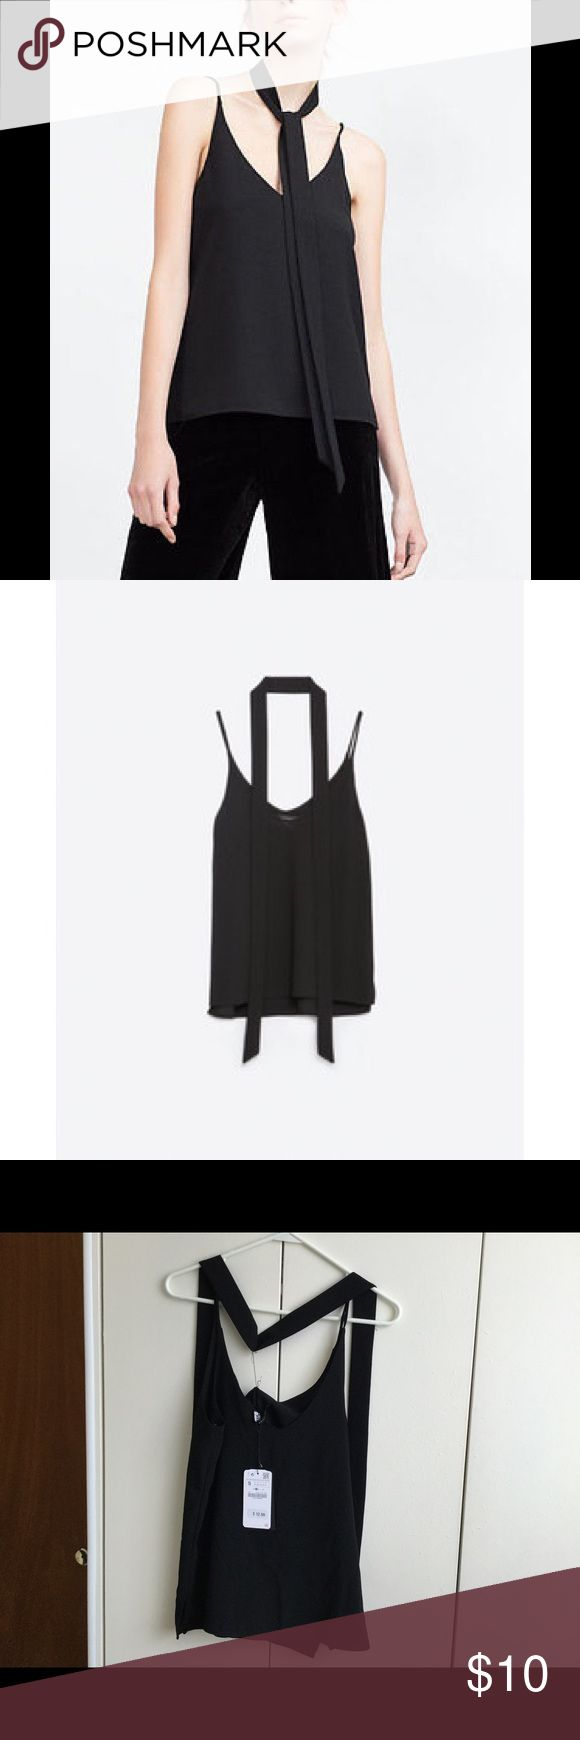 Zara Stappy Top with Neck Tie Zara Strappy Top with Neck Tie in Black size small. NWT. Runs a little big, could definitely fit a medium. Zara Tops Camisoles